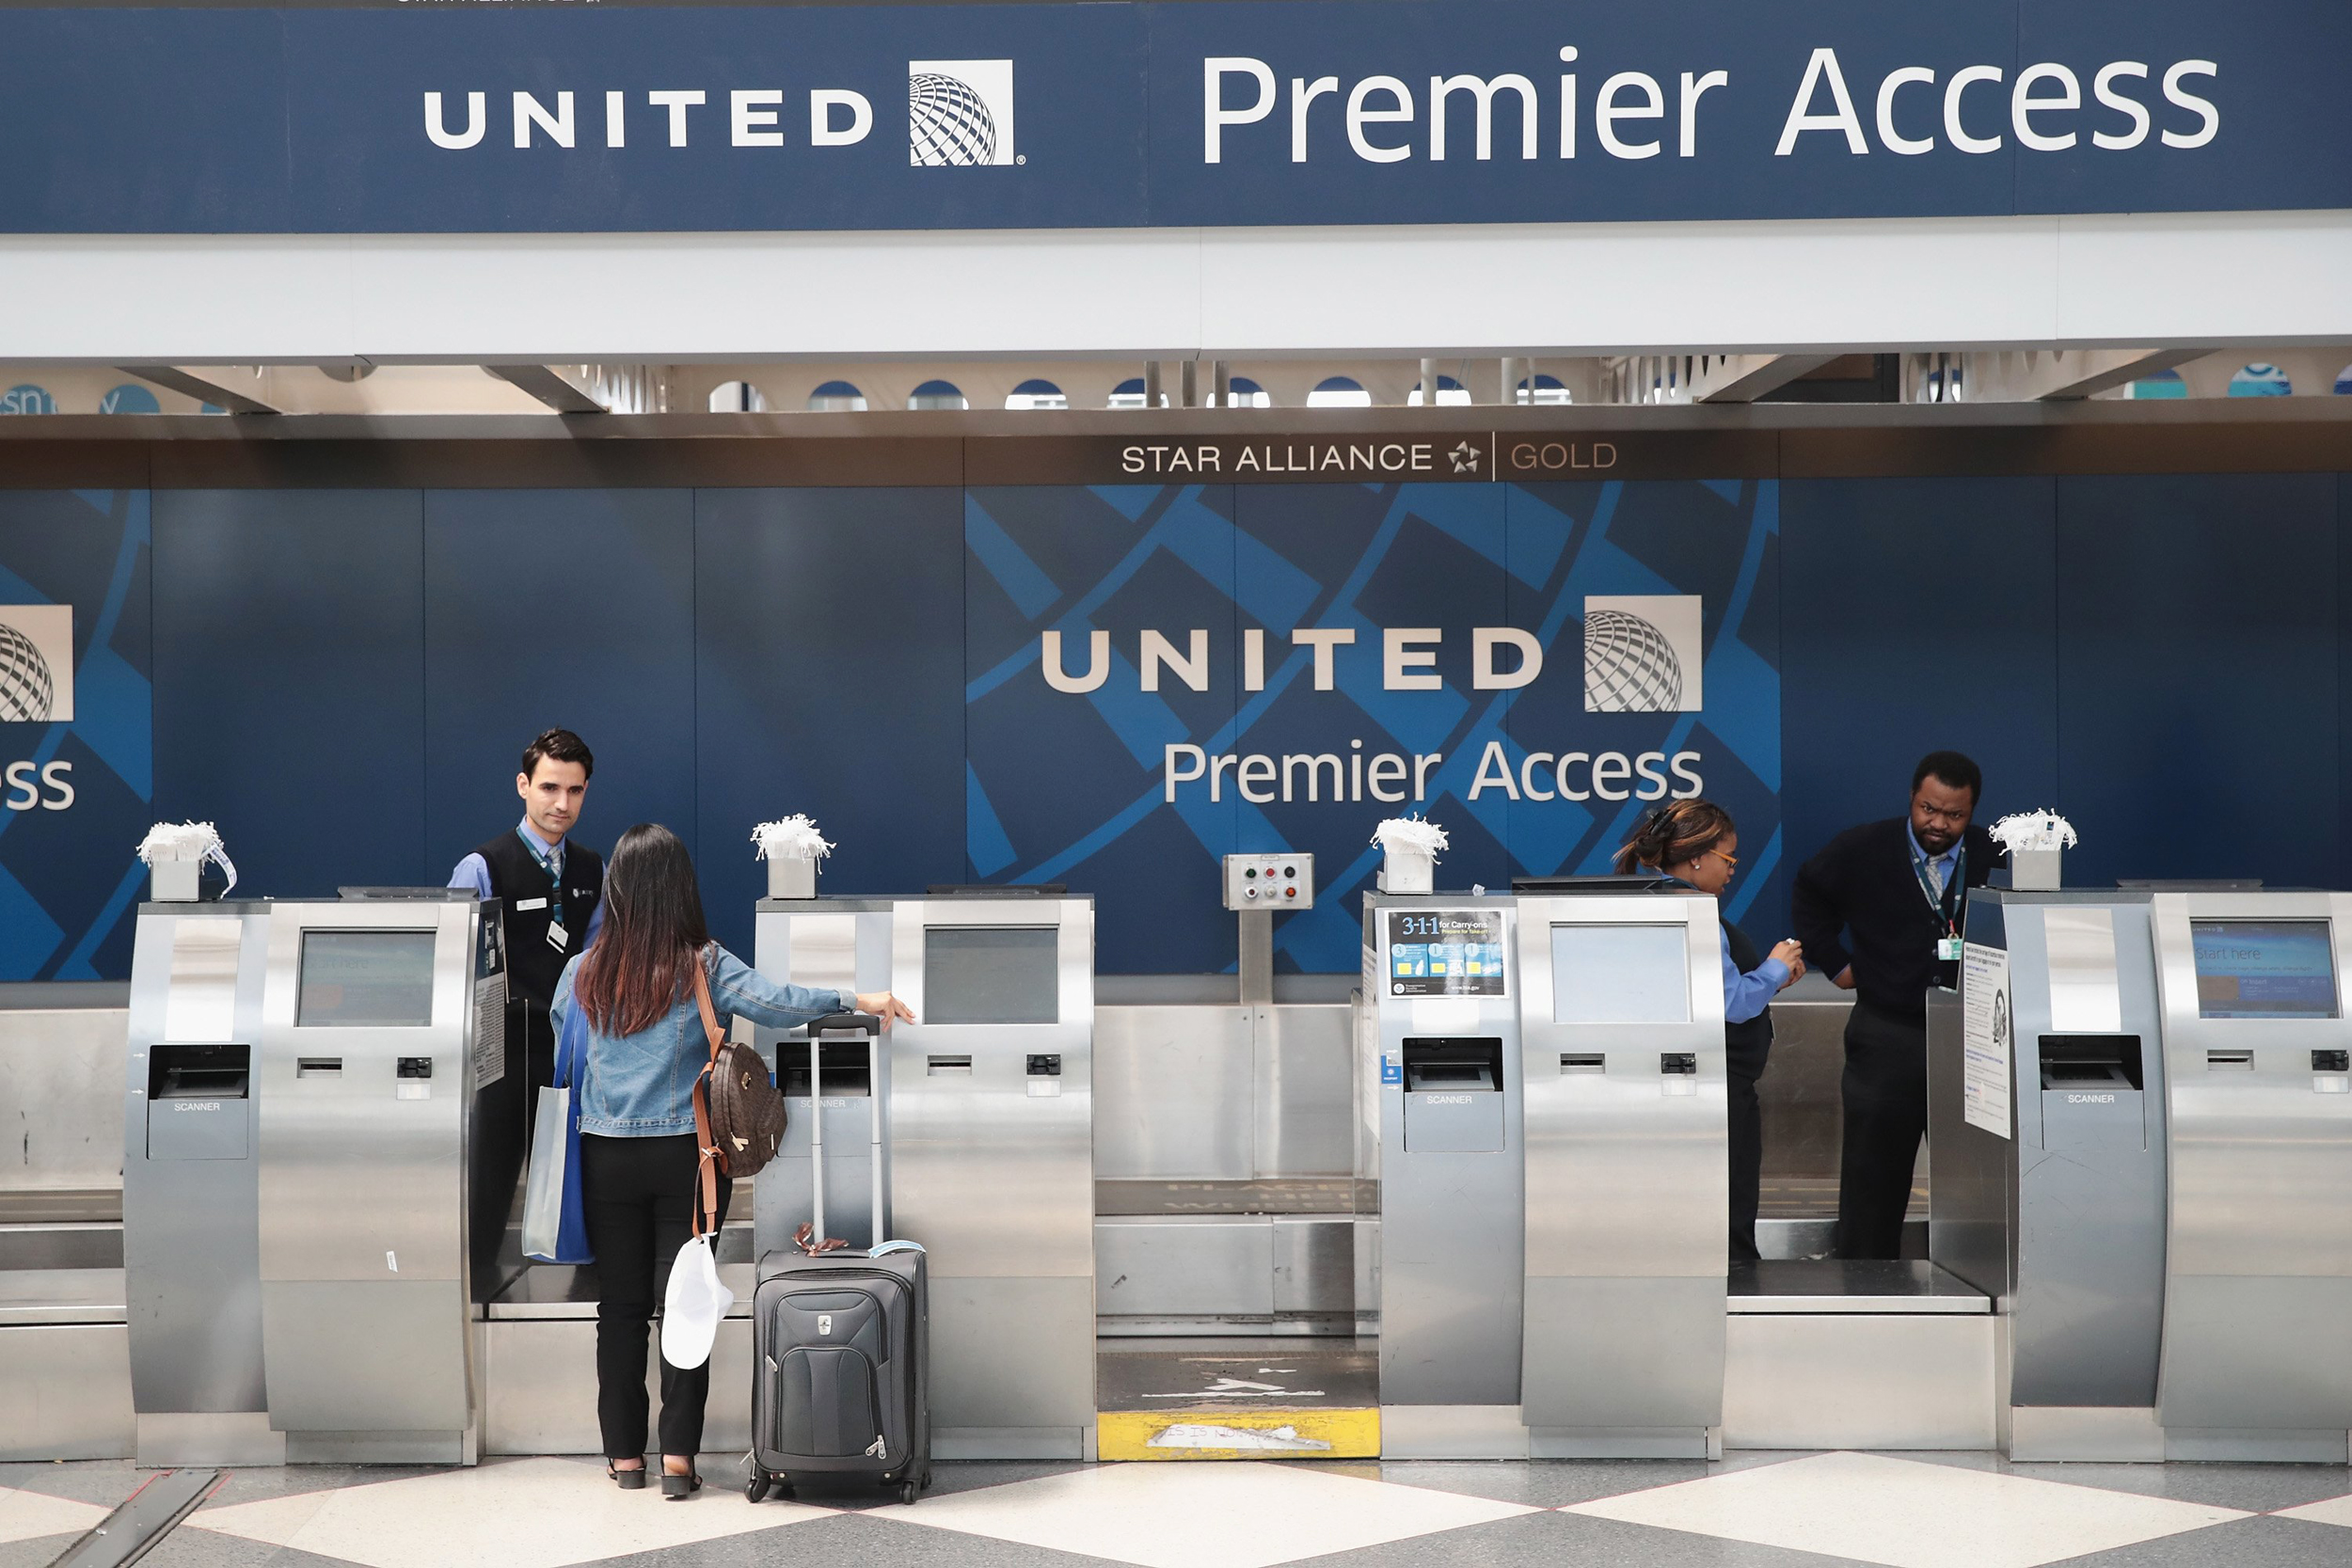 PR Issues Mount for United After Bride and Groom Say They Were Kicked Off Flight